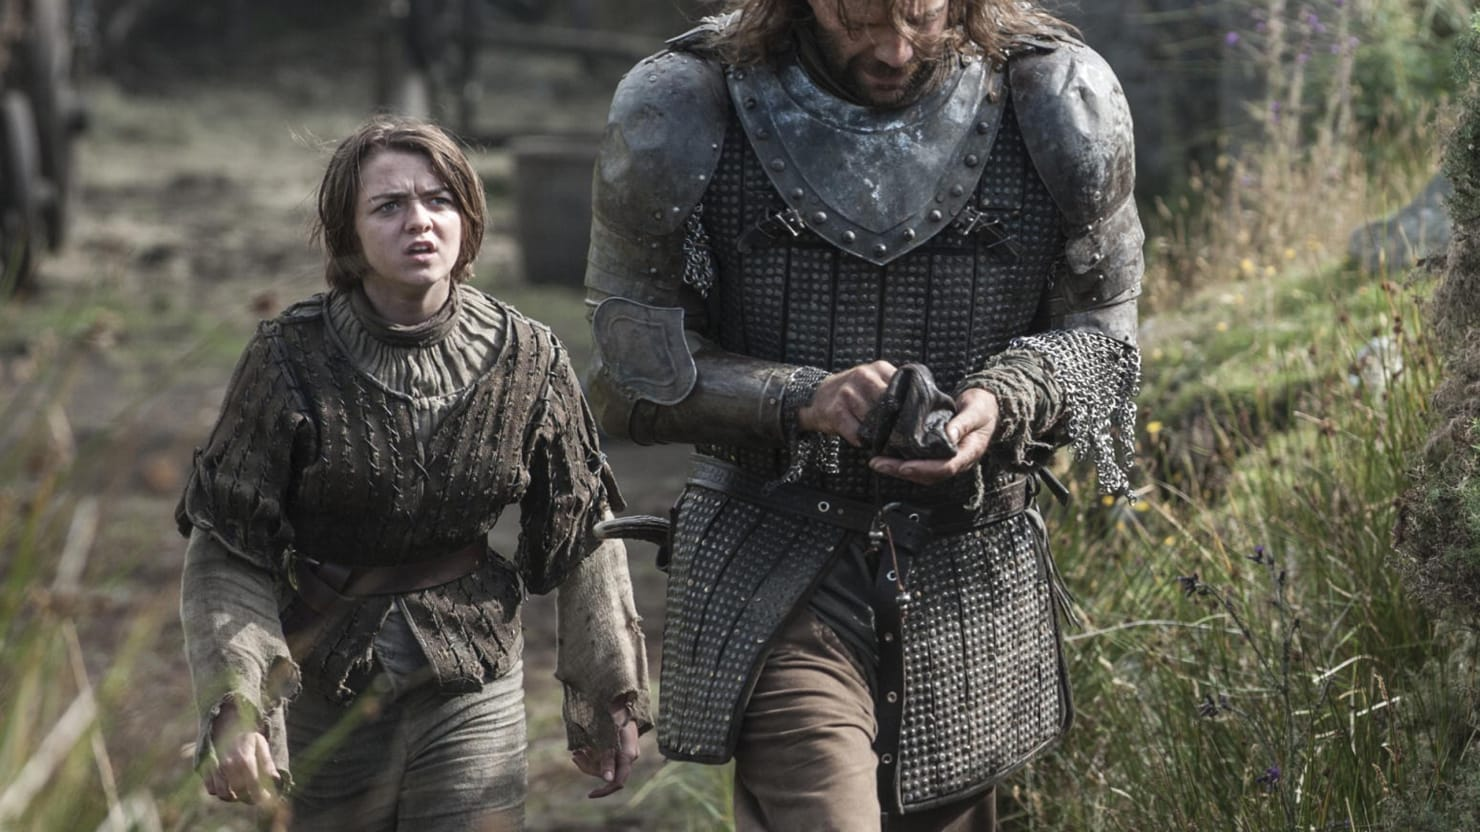 'Game of Thrones' Star Maisie Williams, aka Arya Stark, on Her Big Premiere Episode 'Two Swords'